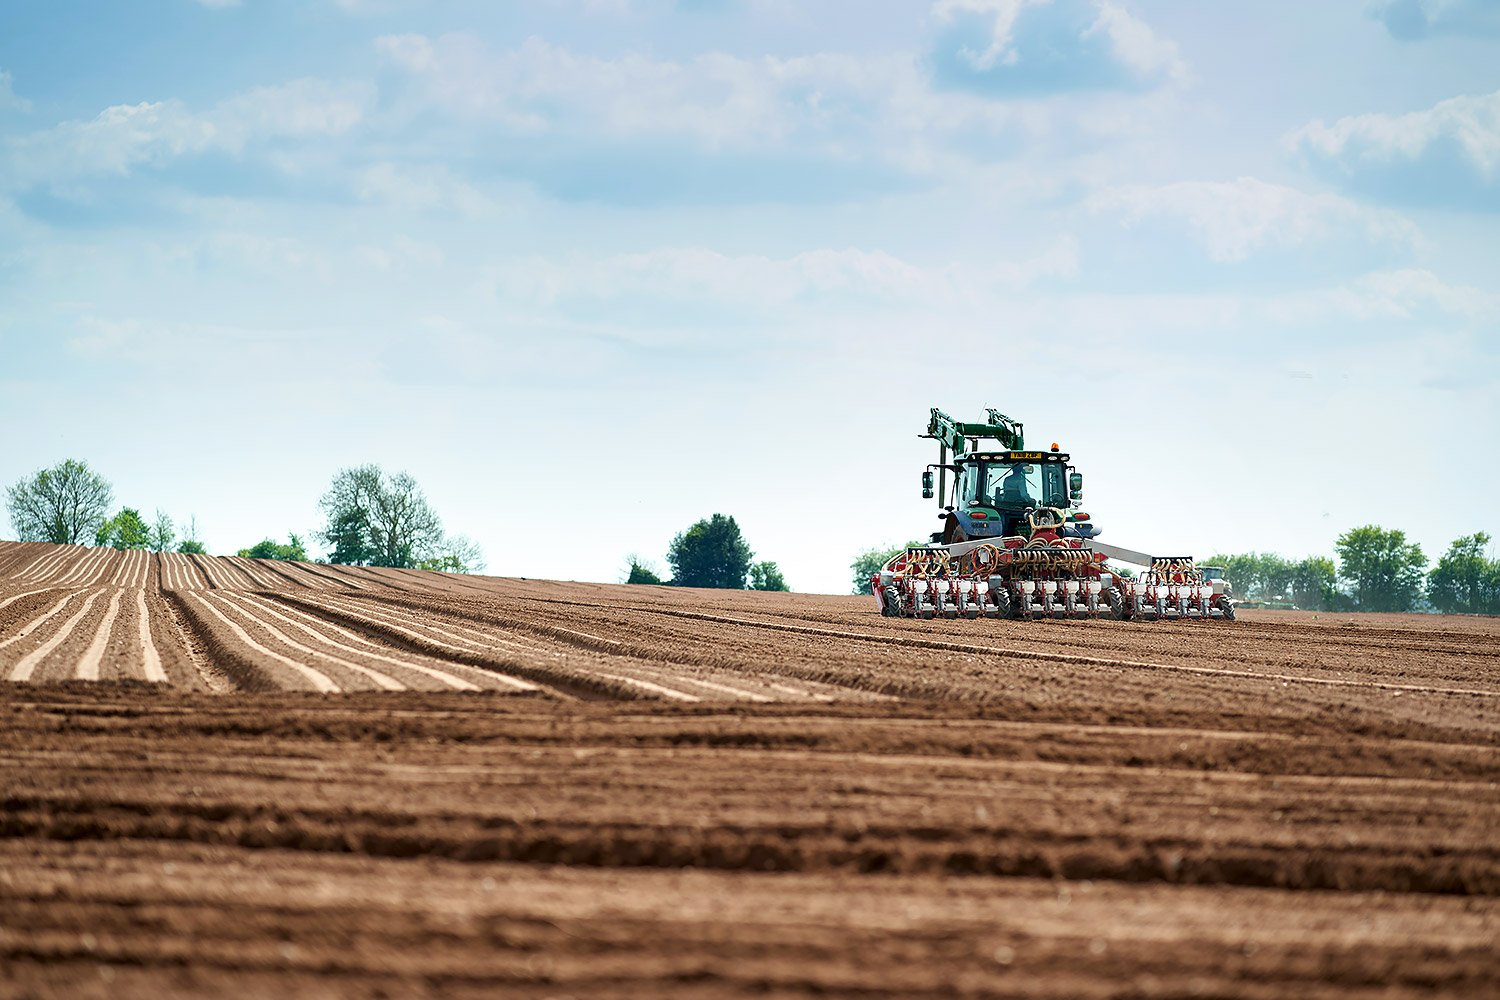 Farmer ploughing field prior to seed planting